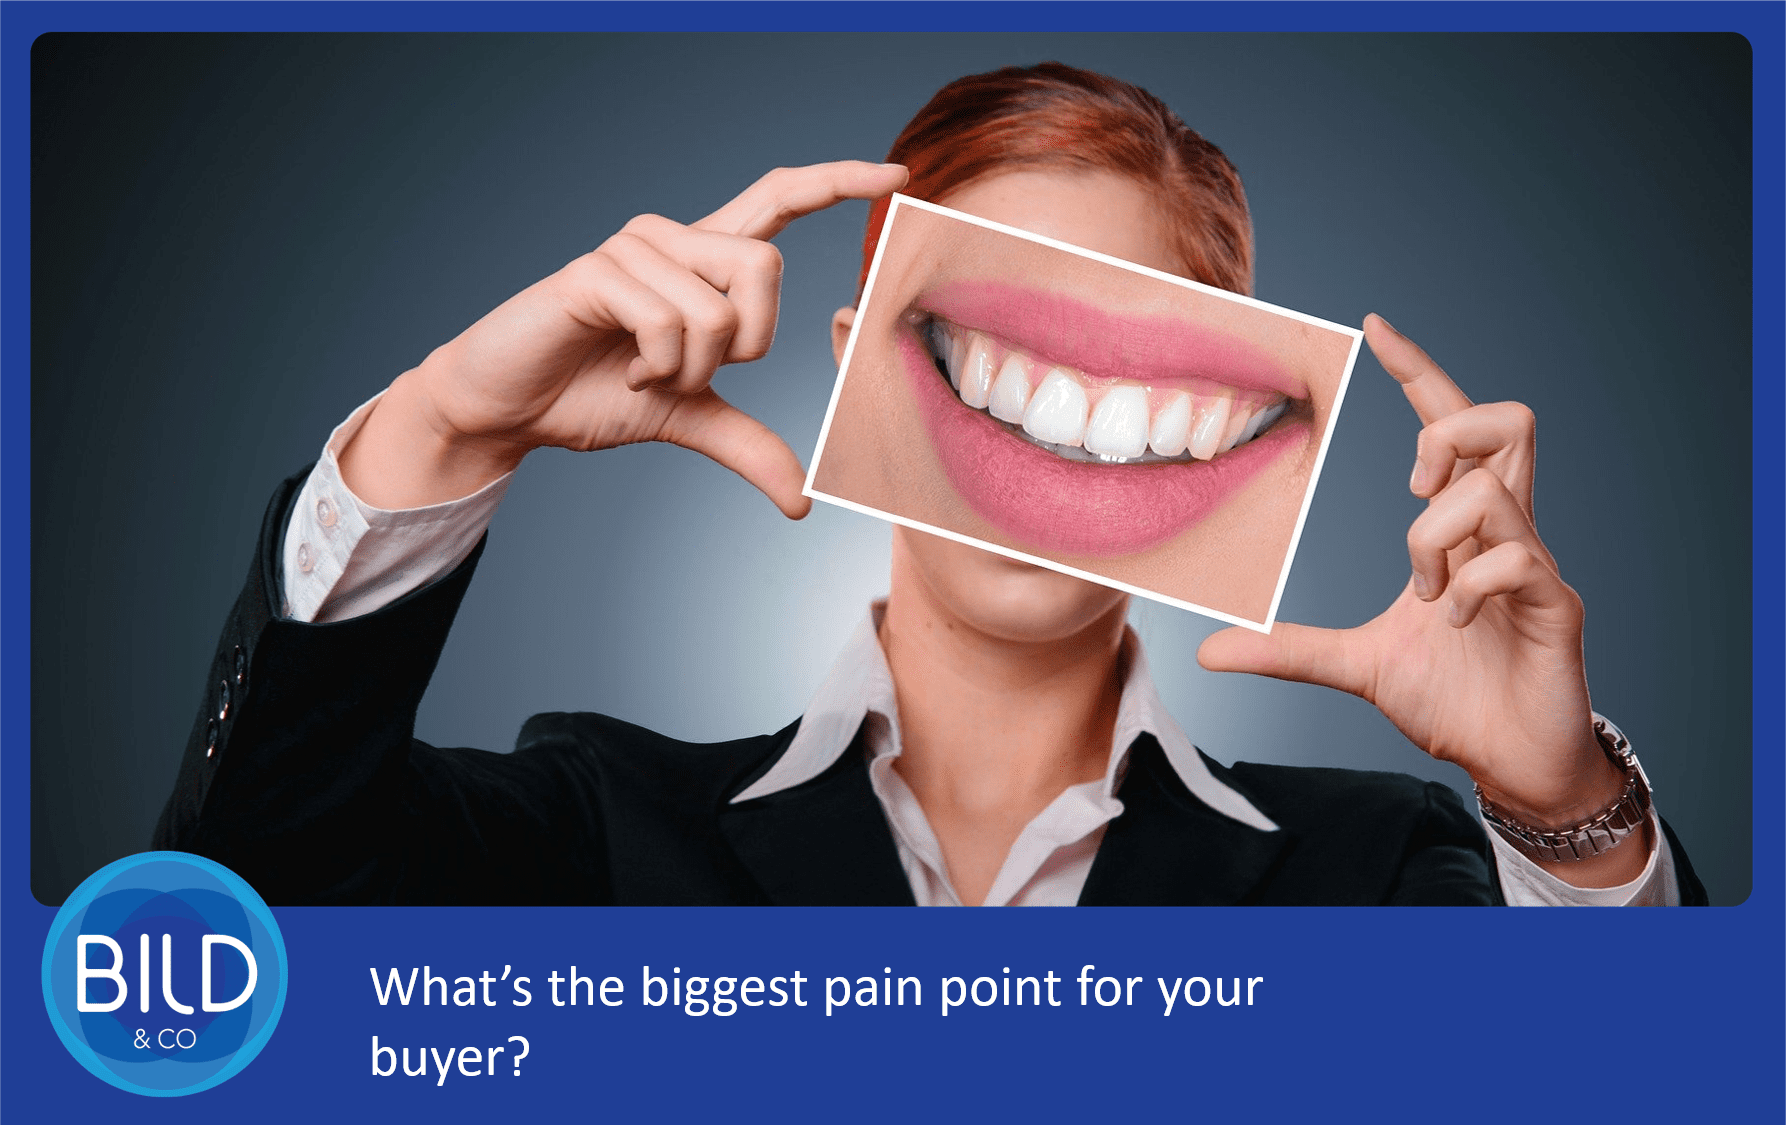 What is the biggest pain point for your buyer?